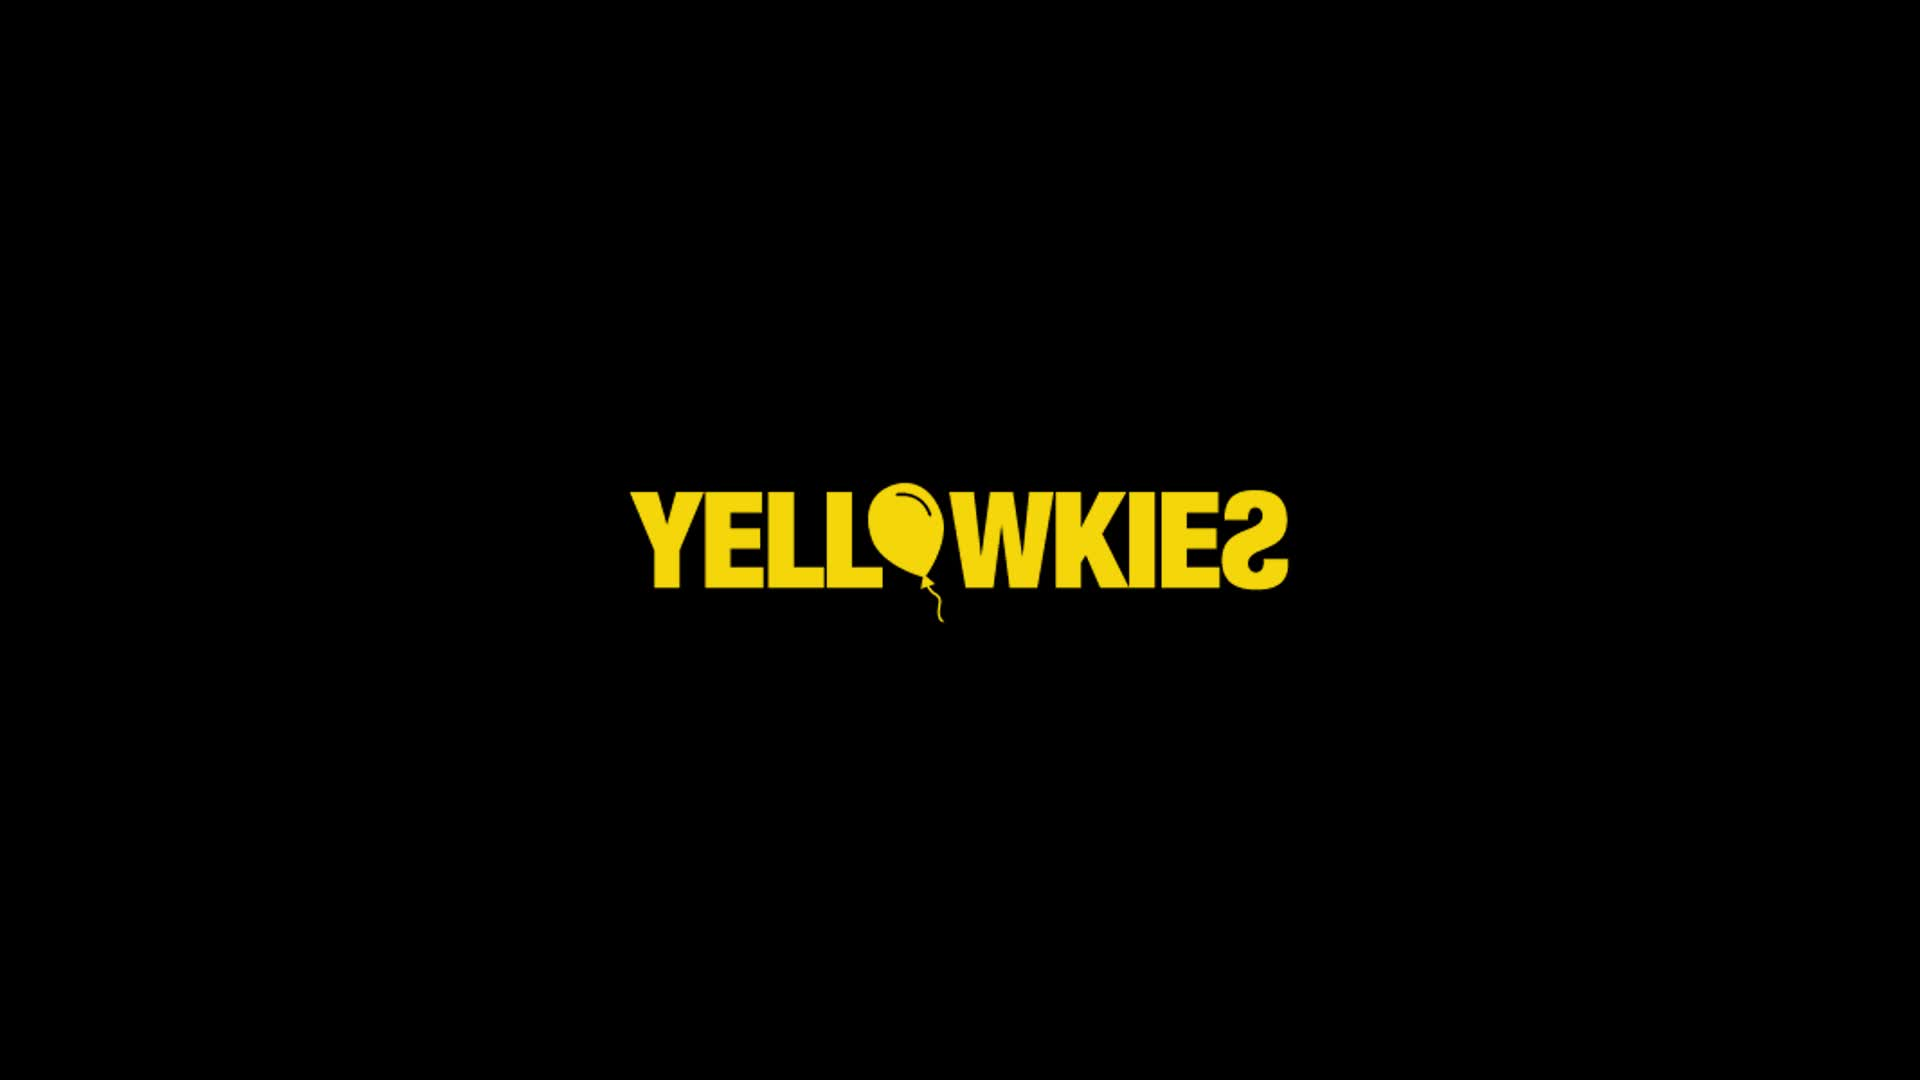 [FROM. SECHSKIES] Sechskies invite to yellowkies 2nd